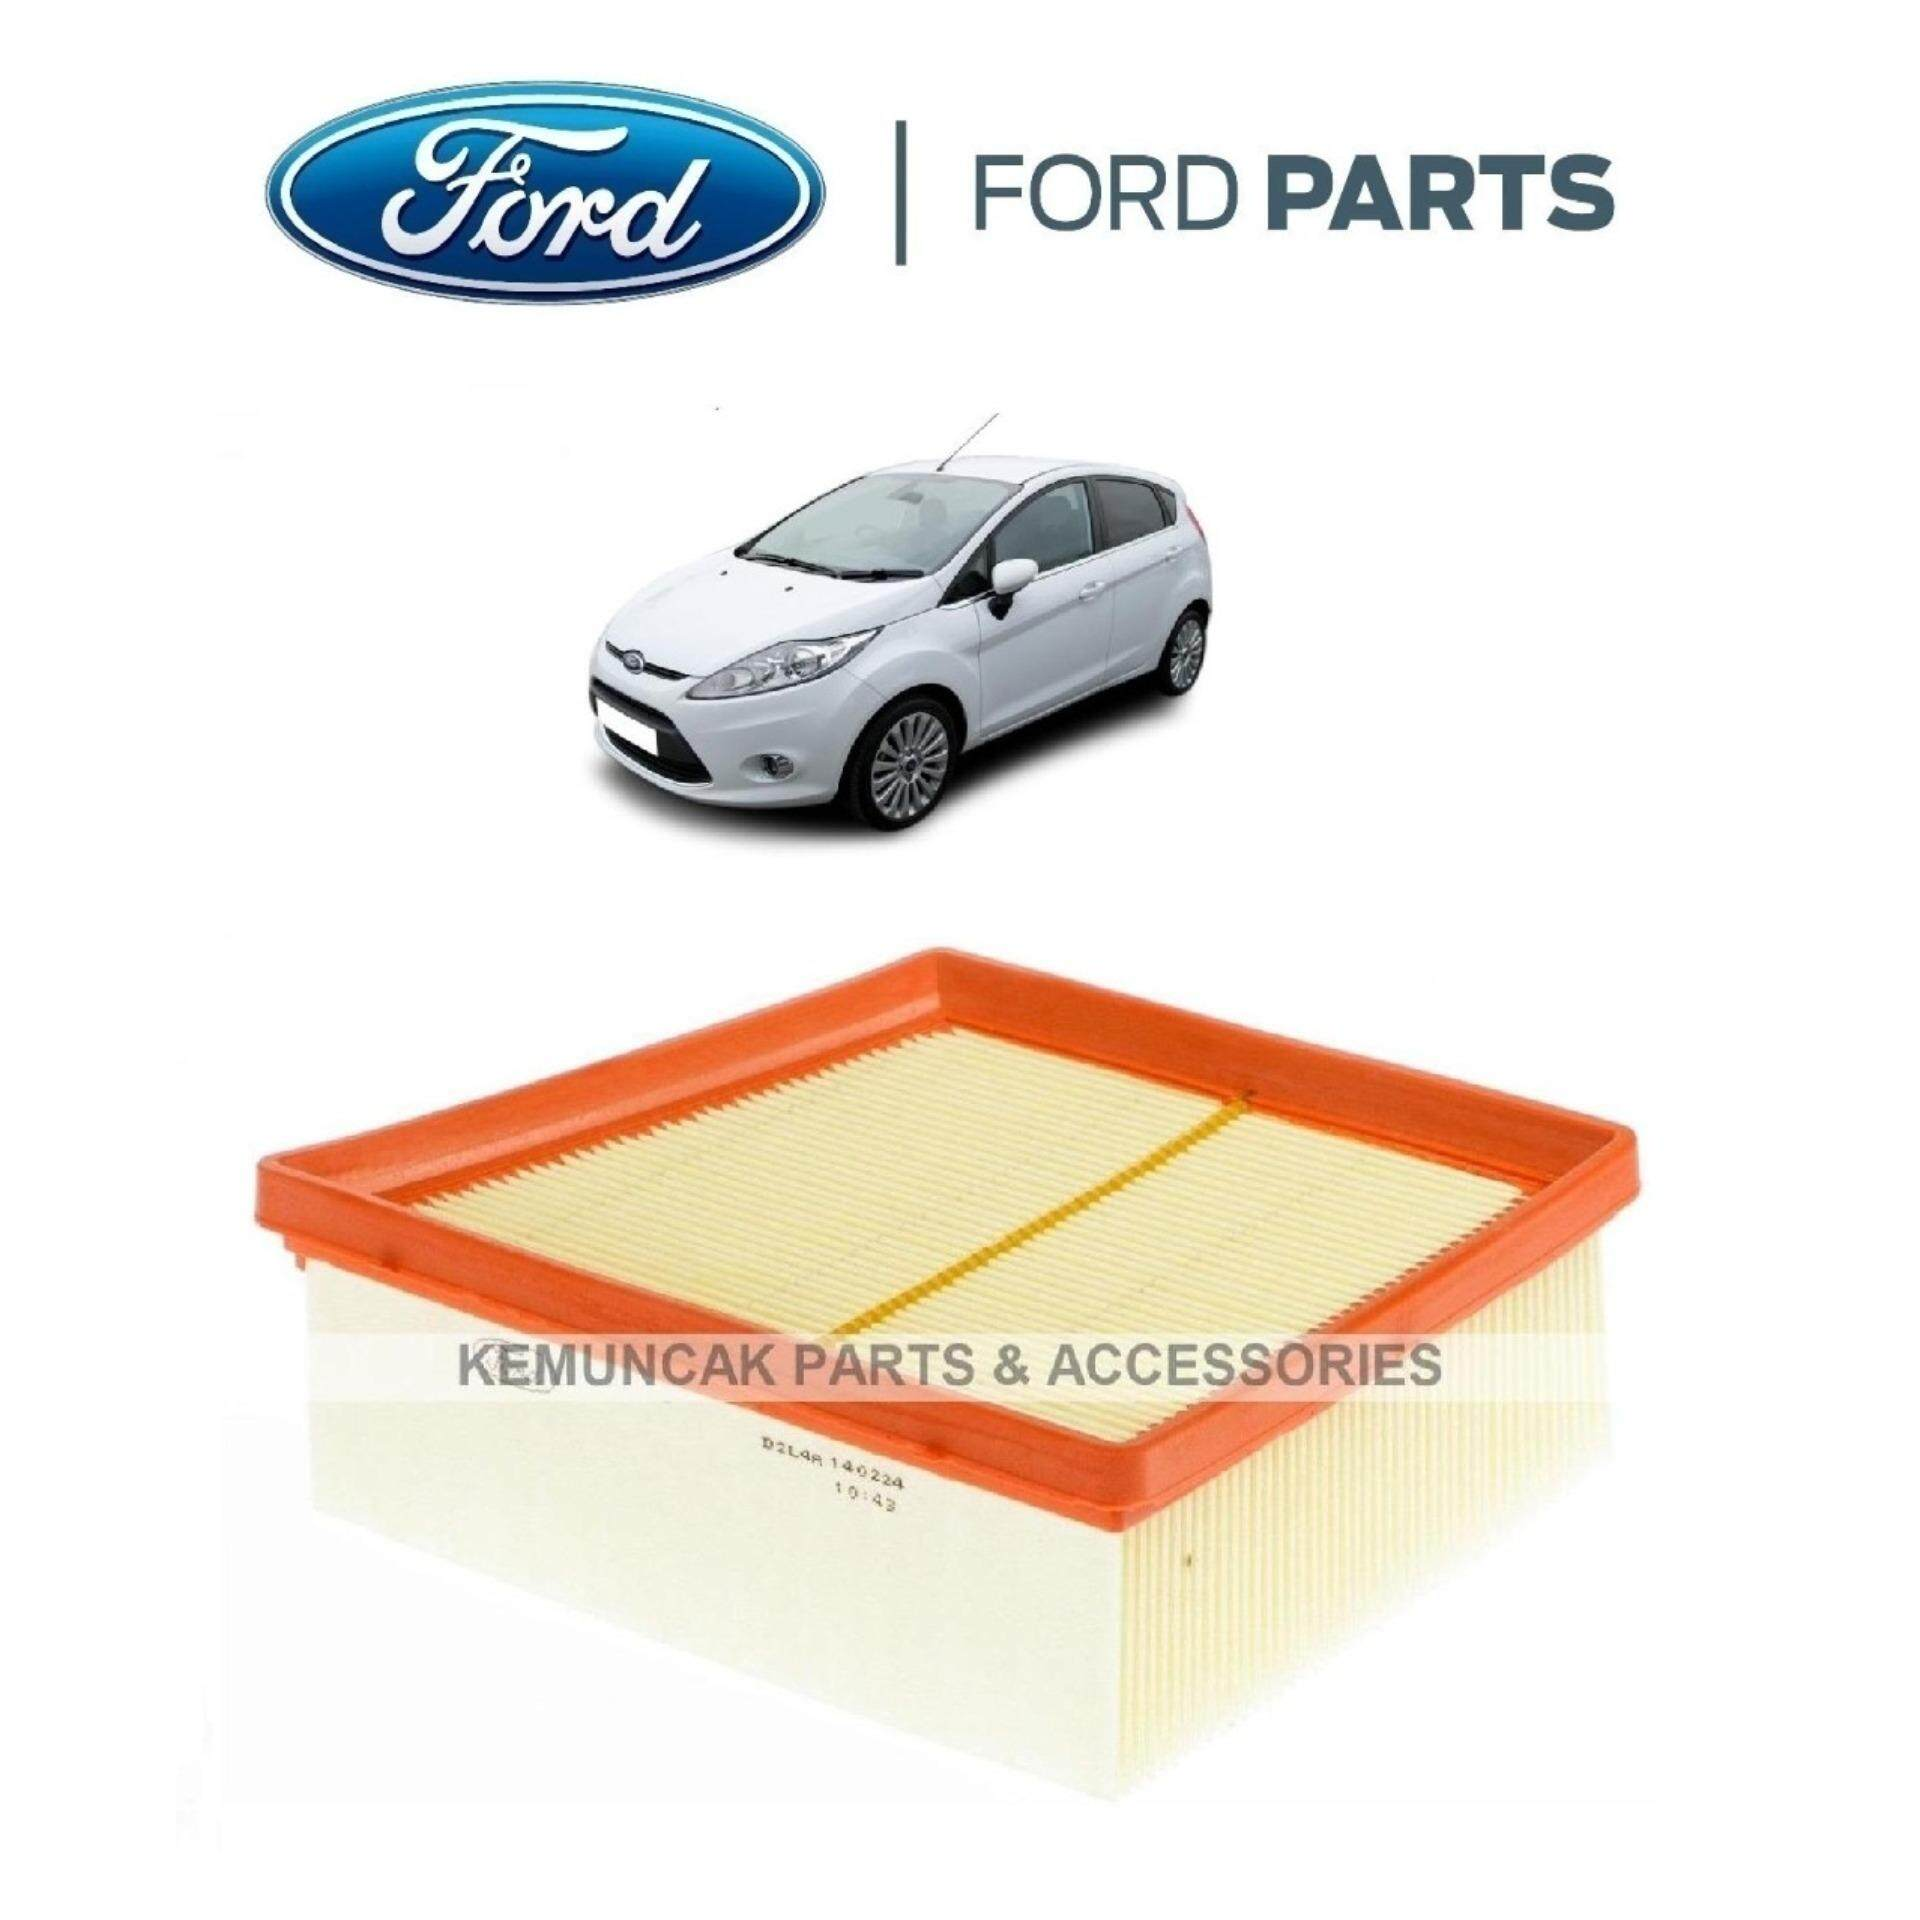 Ford Auto Parts Spares Price In Malaysia Best 05 Mazda 6 Fuel Filter Genuine Fiesta 2010 Air